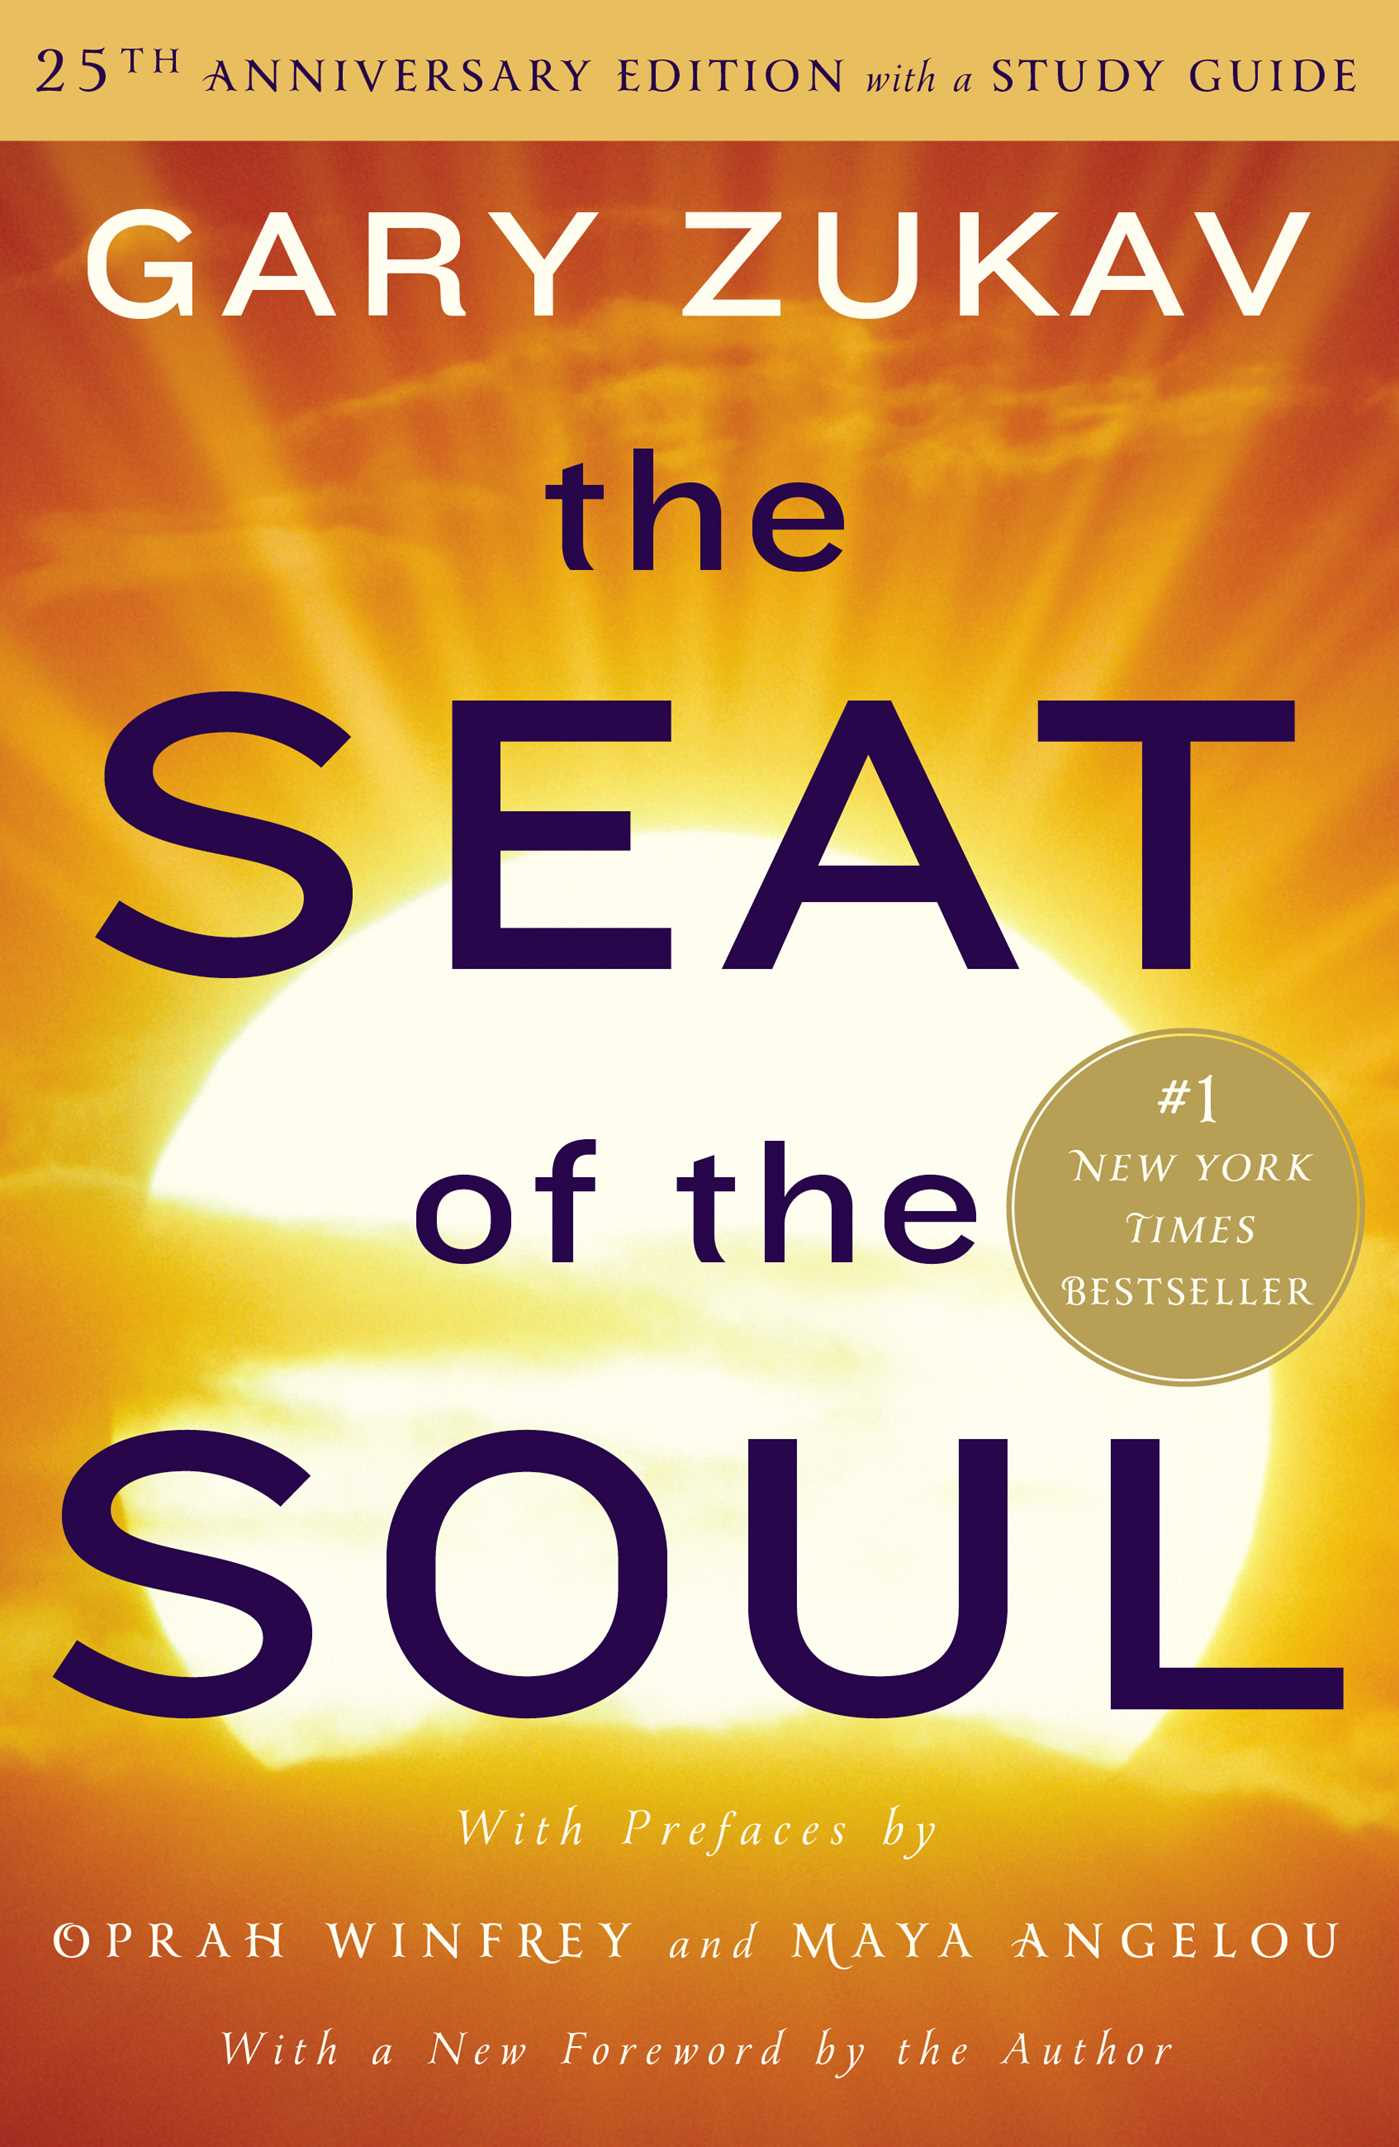 Cover Image of The Seat of the Soul